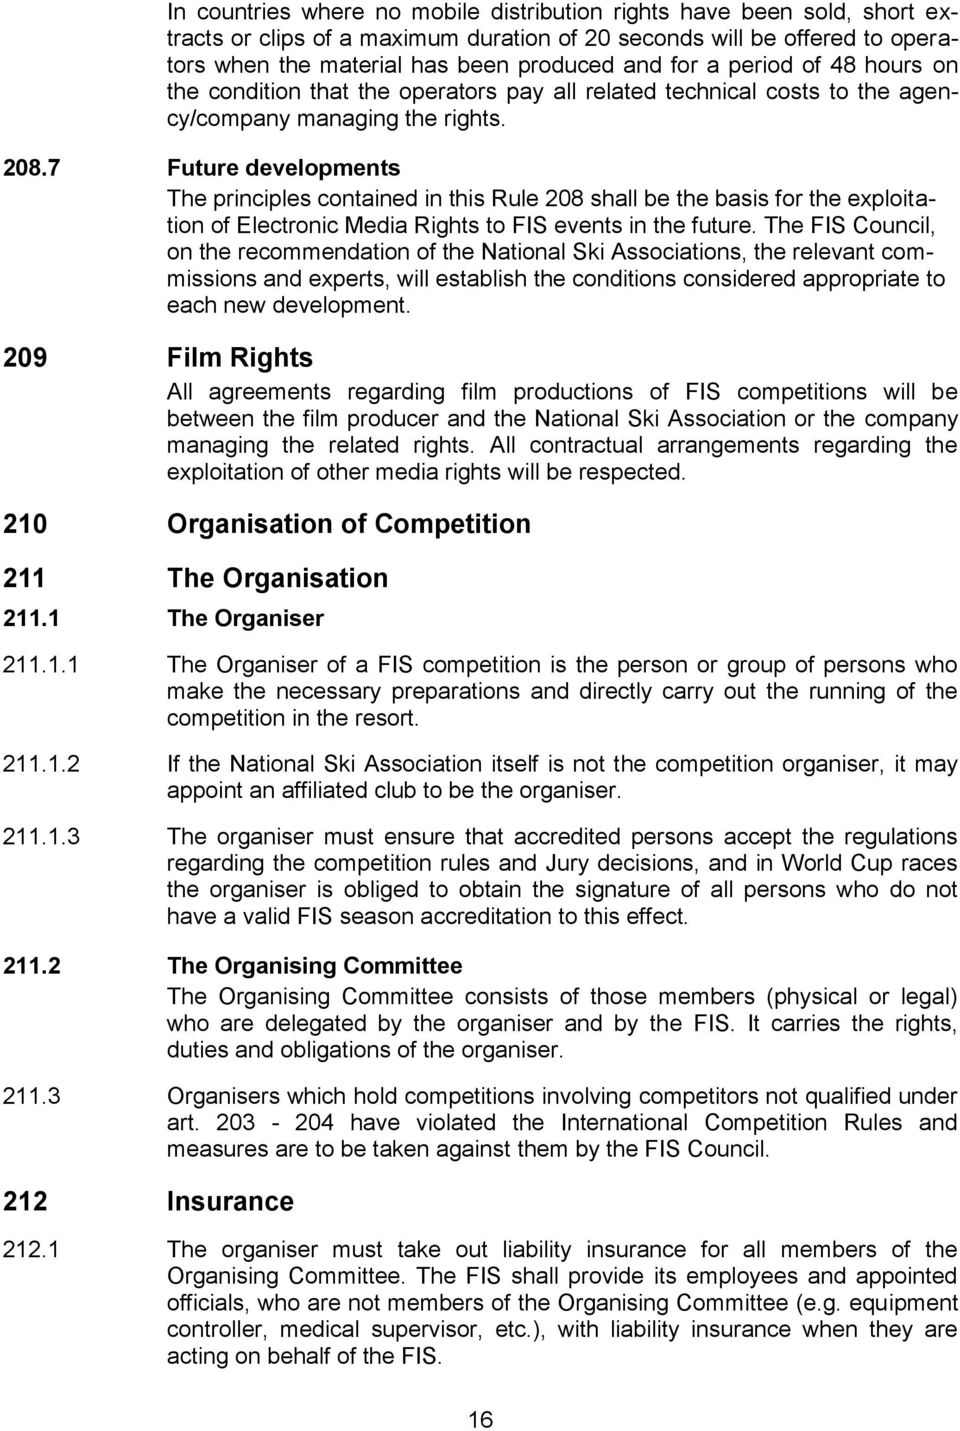 7 Future developments The principles contained in this Rule 208 shall be the basis for the exploitation of Electronic Media Rights to FIS events in the future.